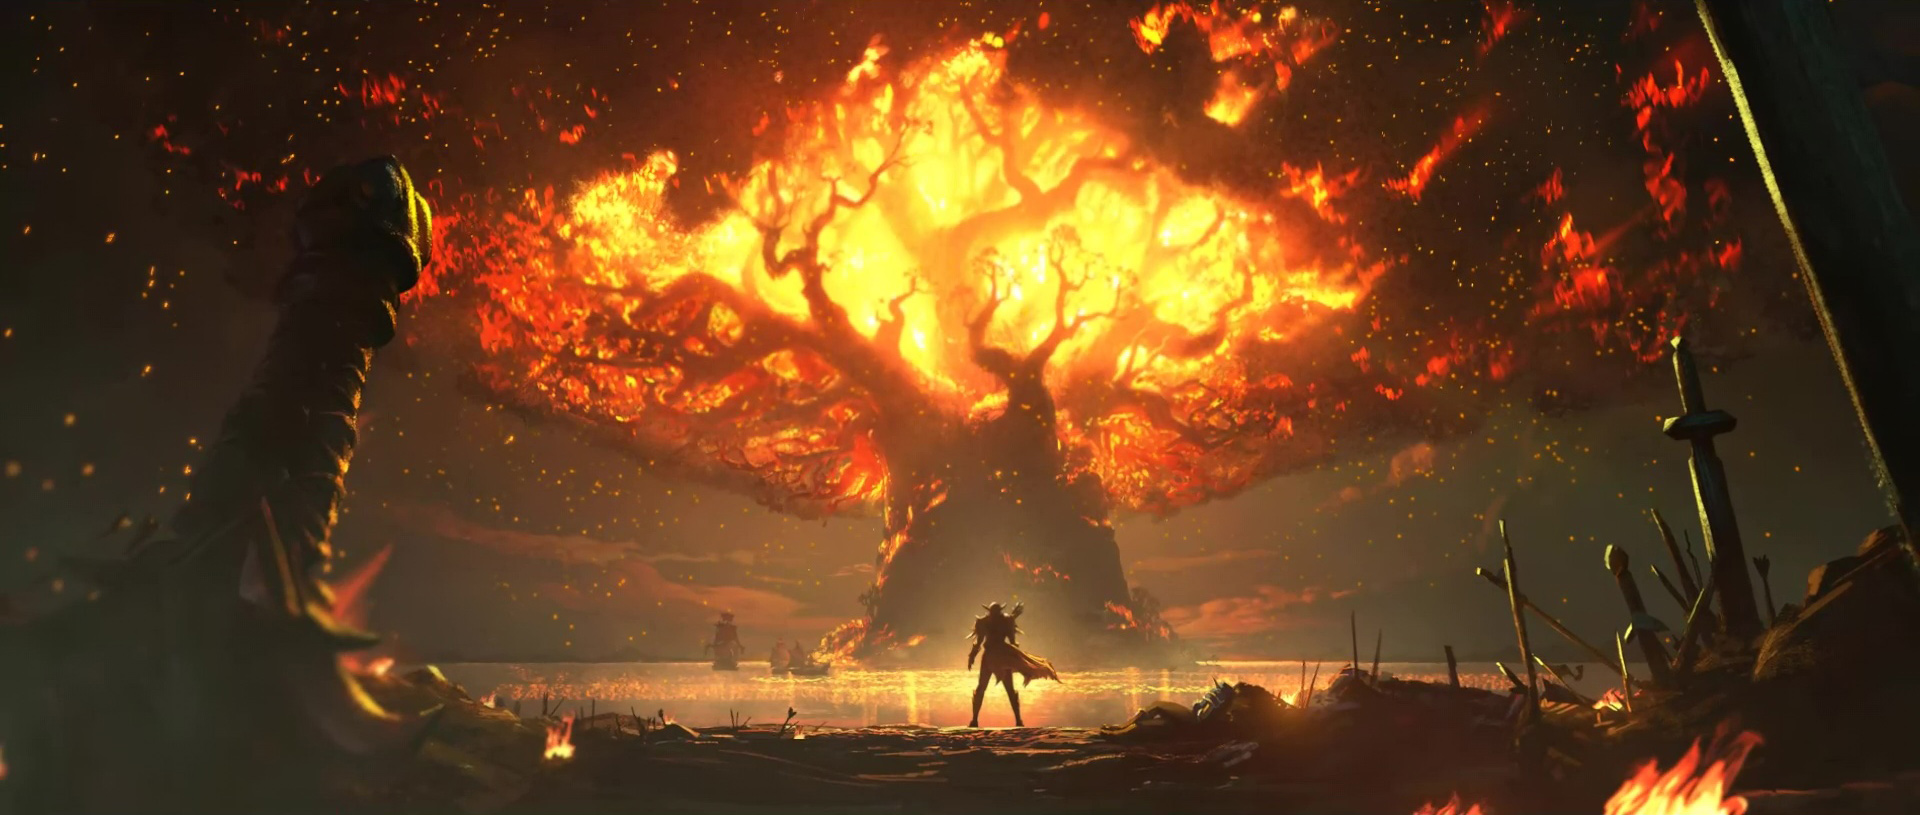 Pre-Battle for Azeroth: The Burning of Teldrassil (Horde)